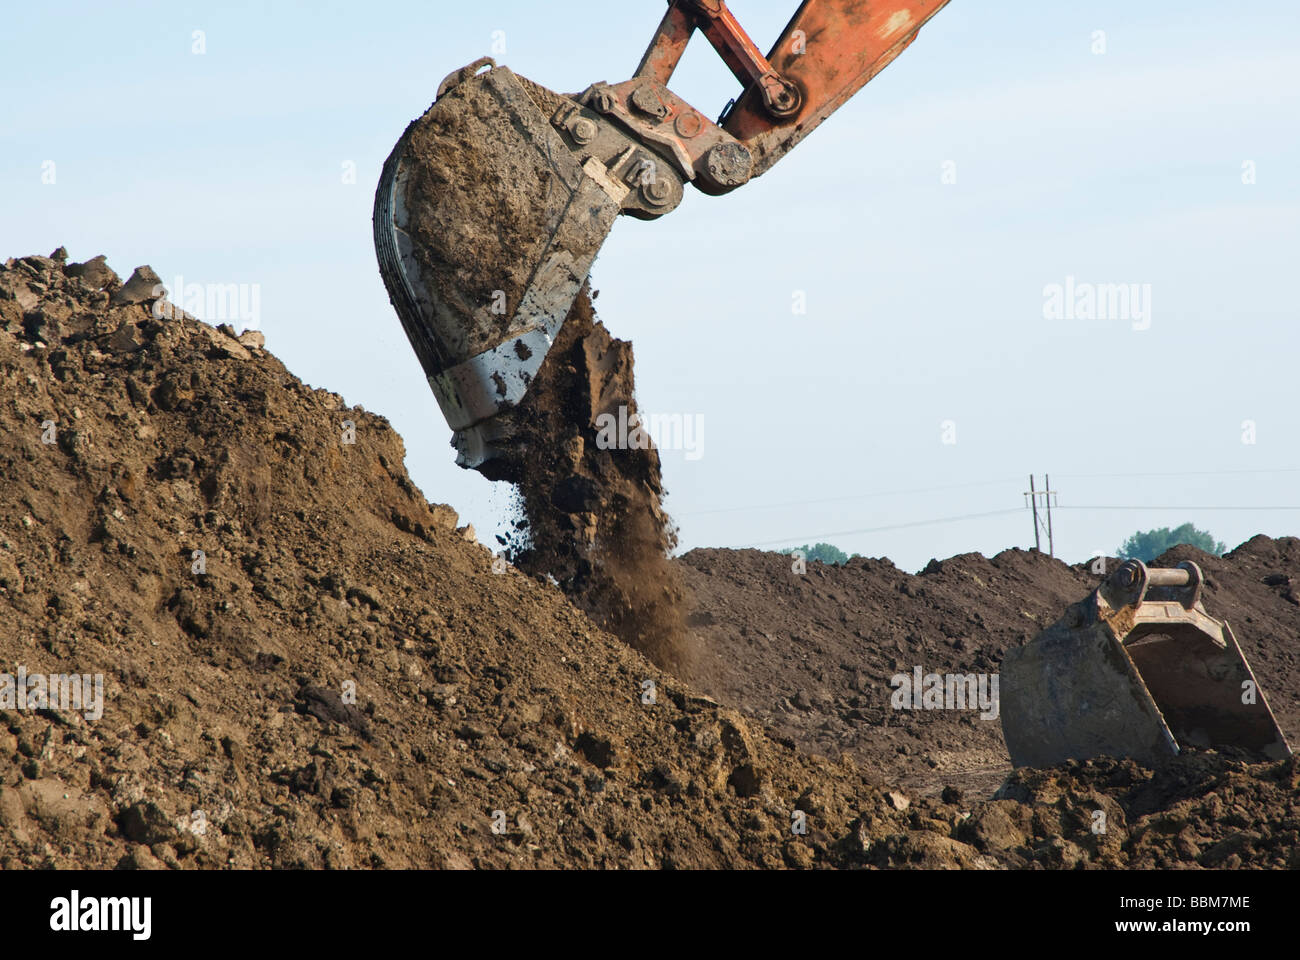 an excavator dumping a bucket of dirt - Stock Image